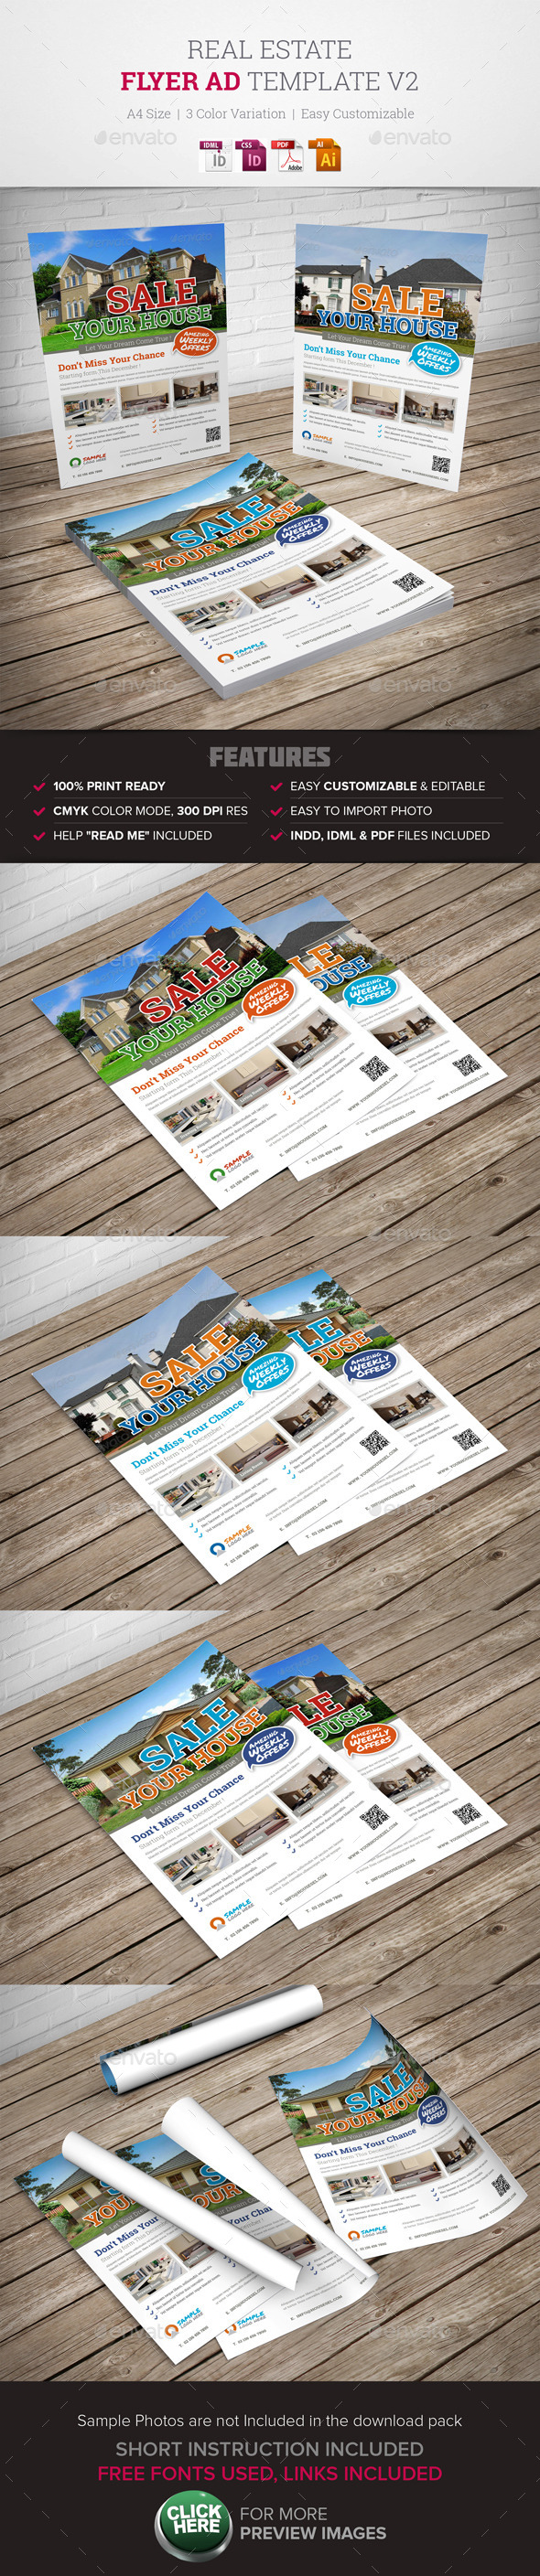 Real Estate Flyer Ad v2  - Corporate Flyers